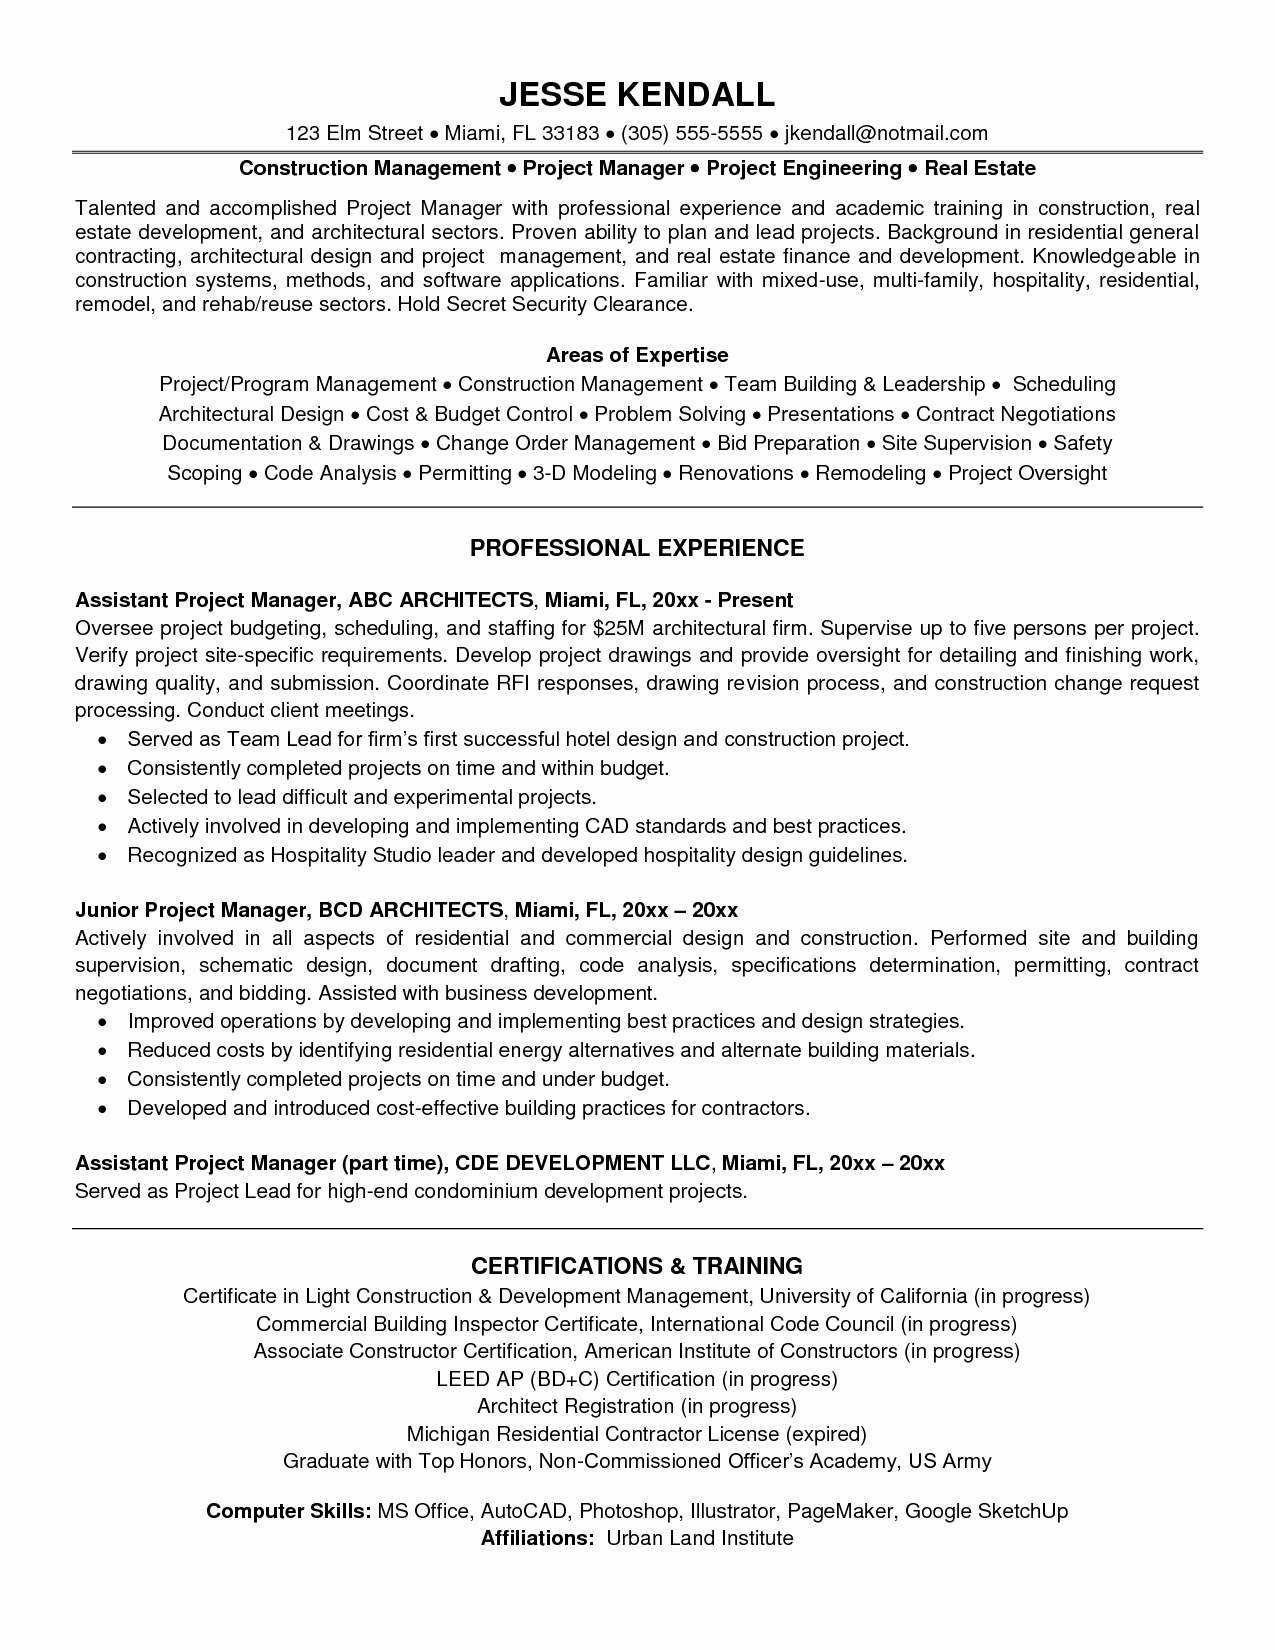 Scrum Master Resume Example - Scrum Master Resume Best Resume Templates Resume Examples Resume